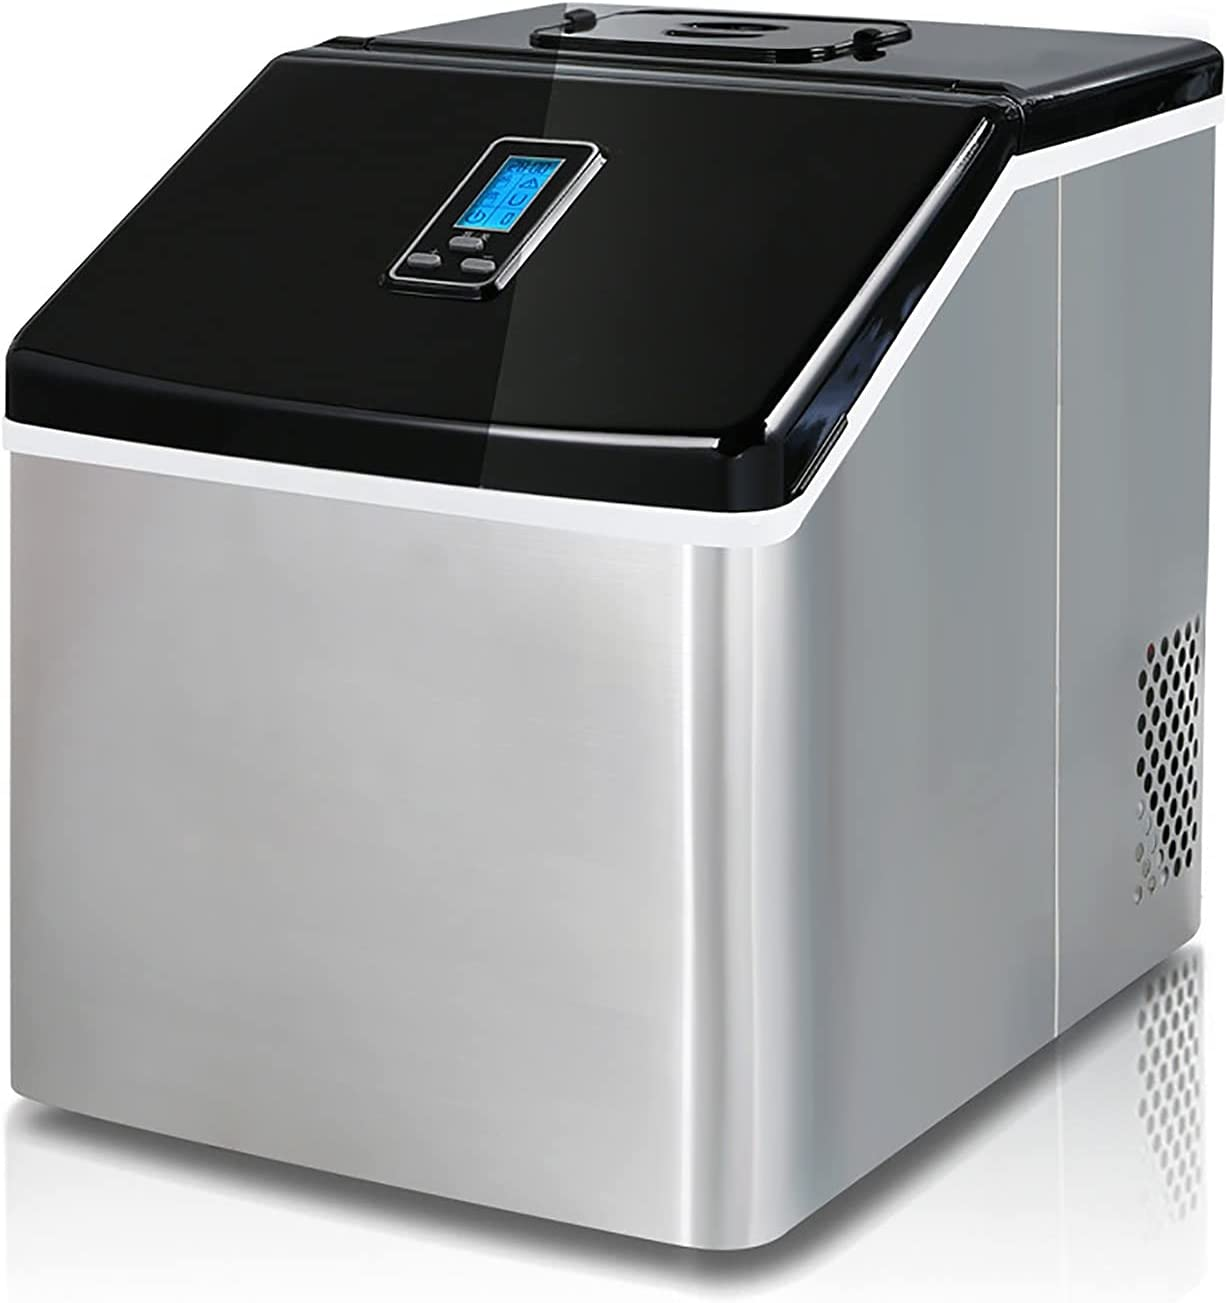 QERNTPEY Ice Maker Bombing free shipping Machine Milk Commercial Dealing full price reduction Tea Shop Sq Small